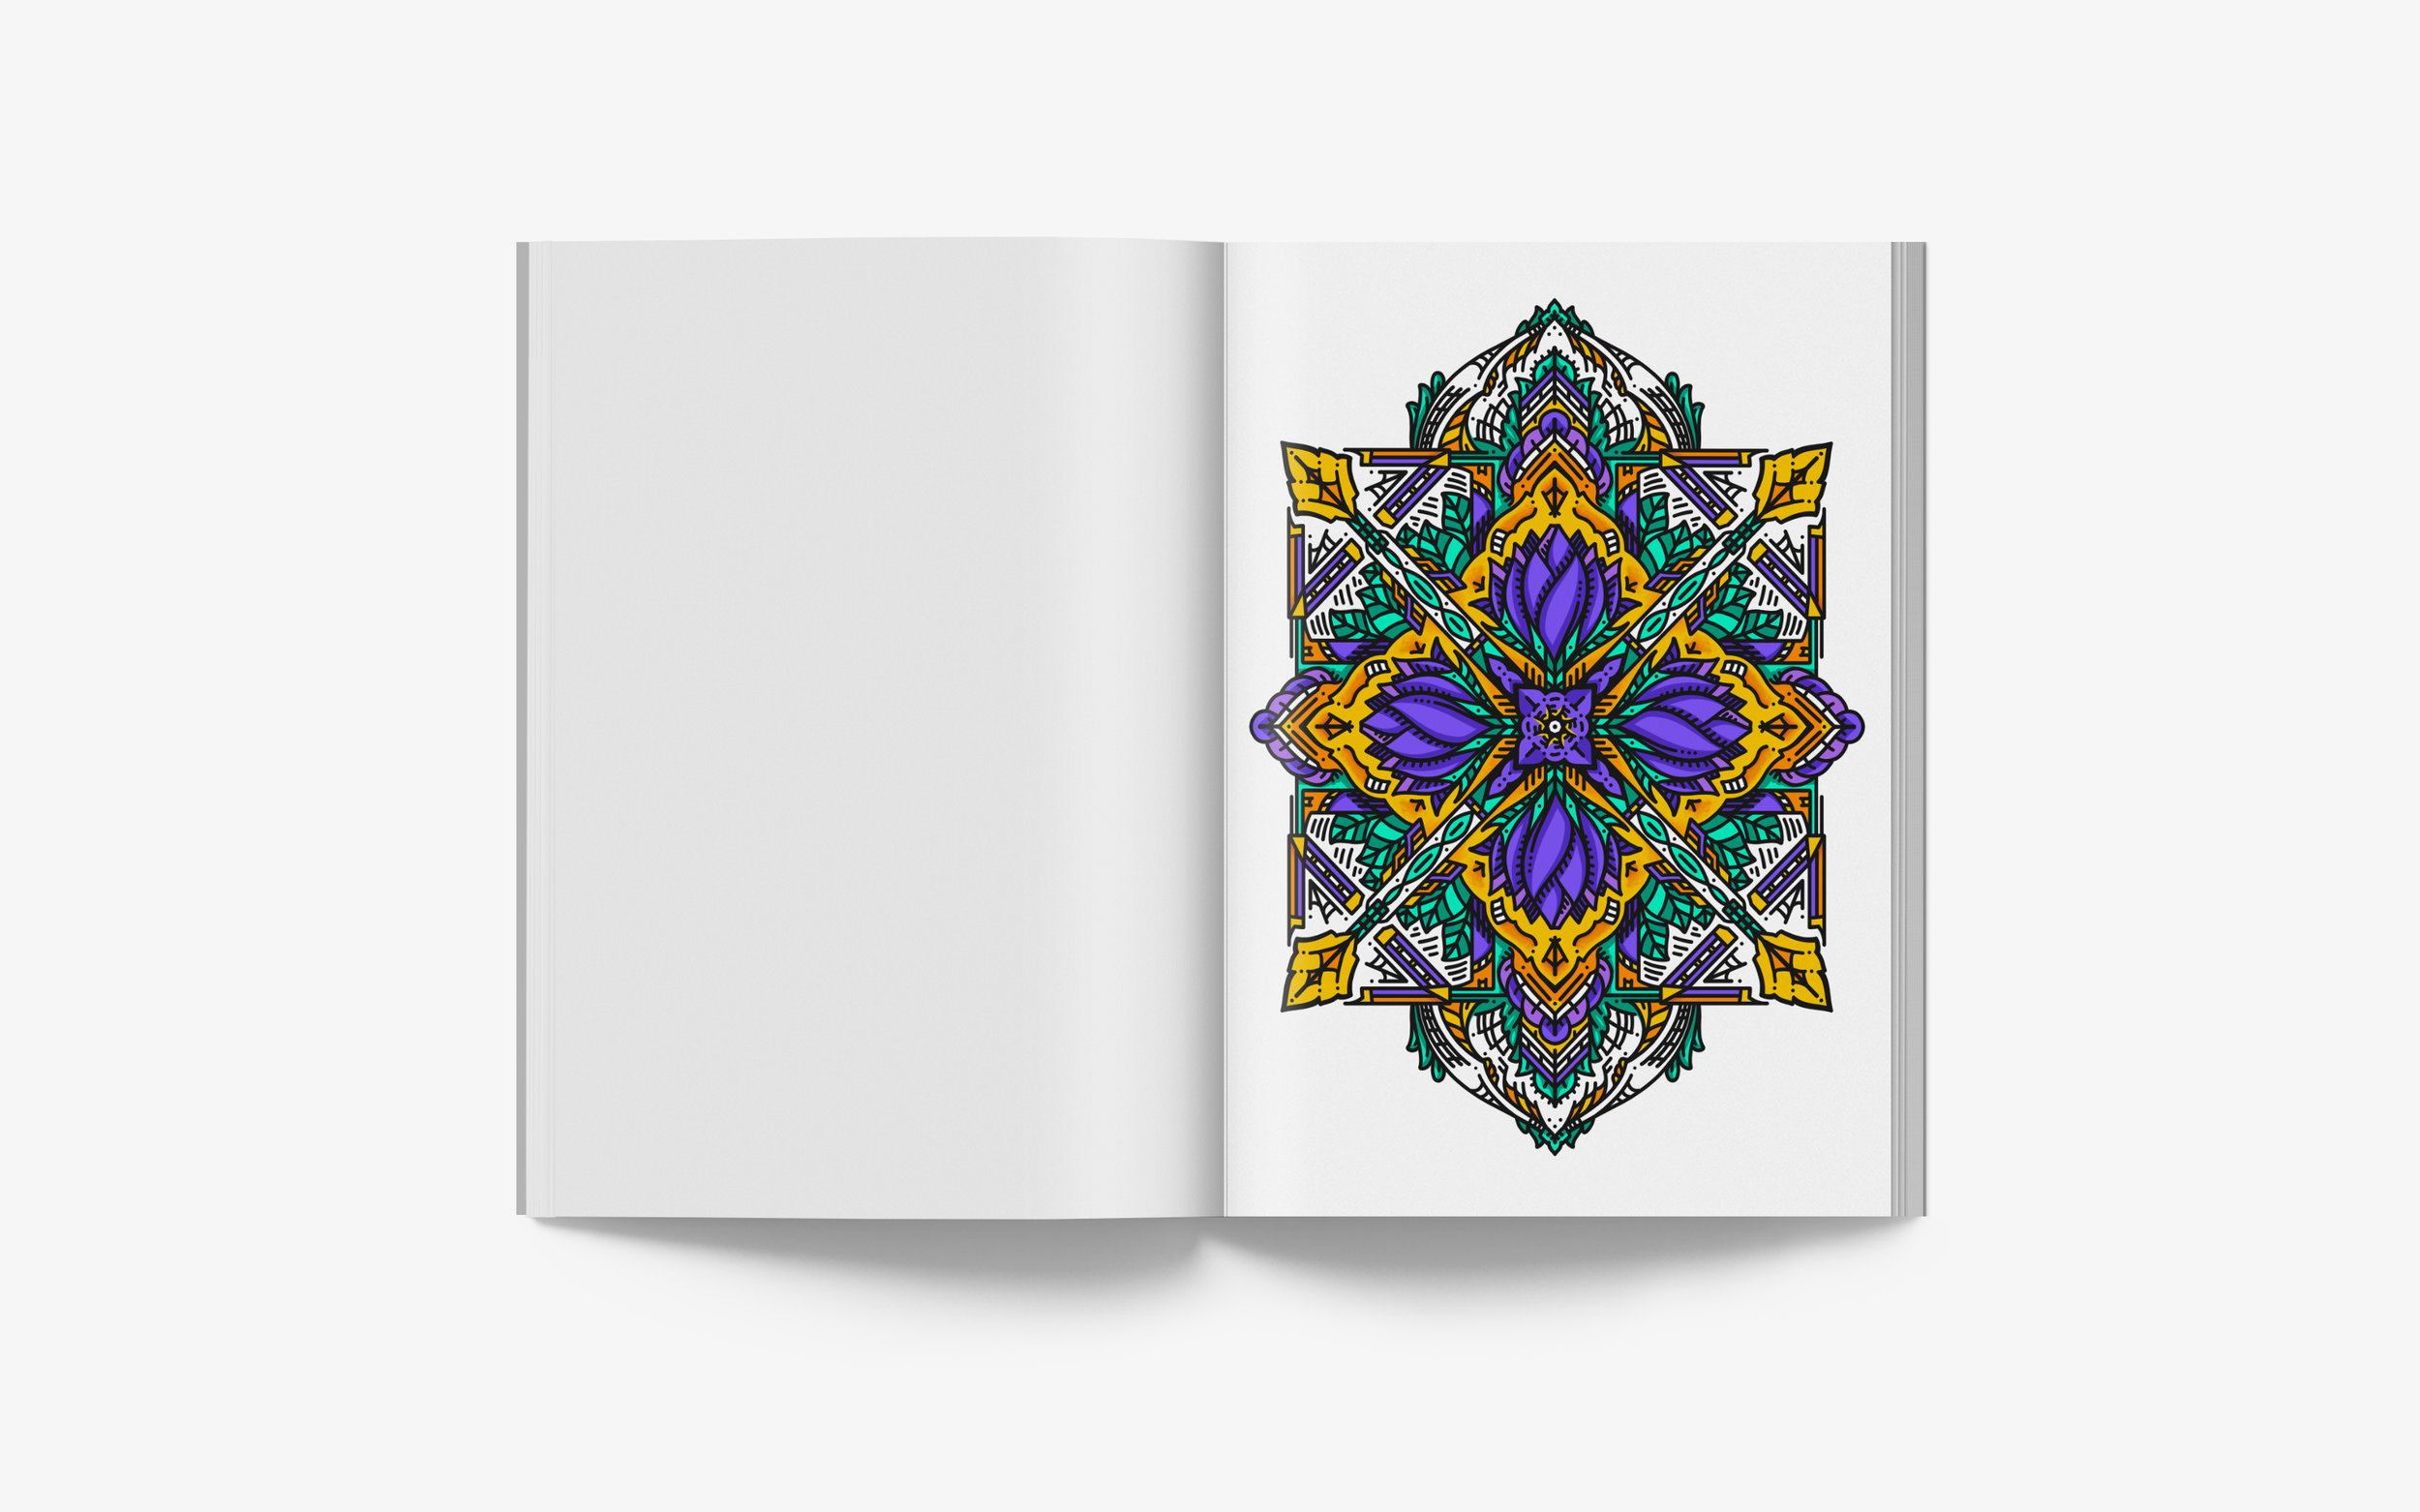 mx-coloringbook-v1-showcase-pages-1.4.jpg